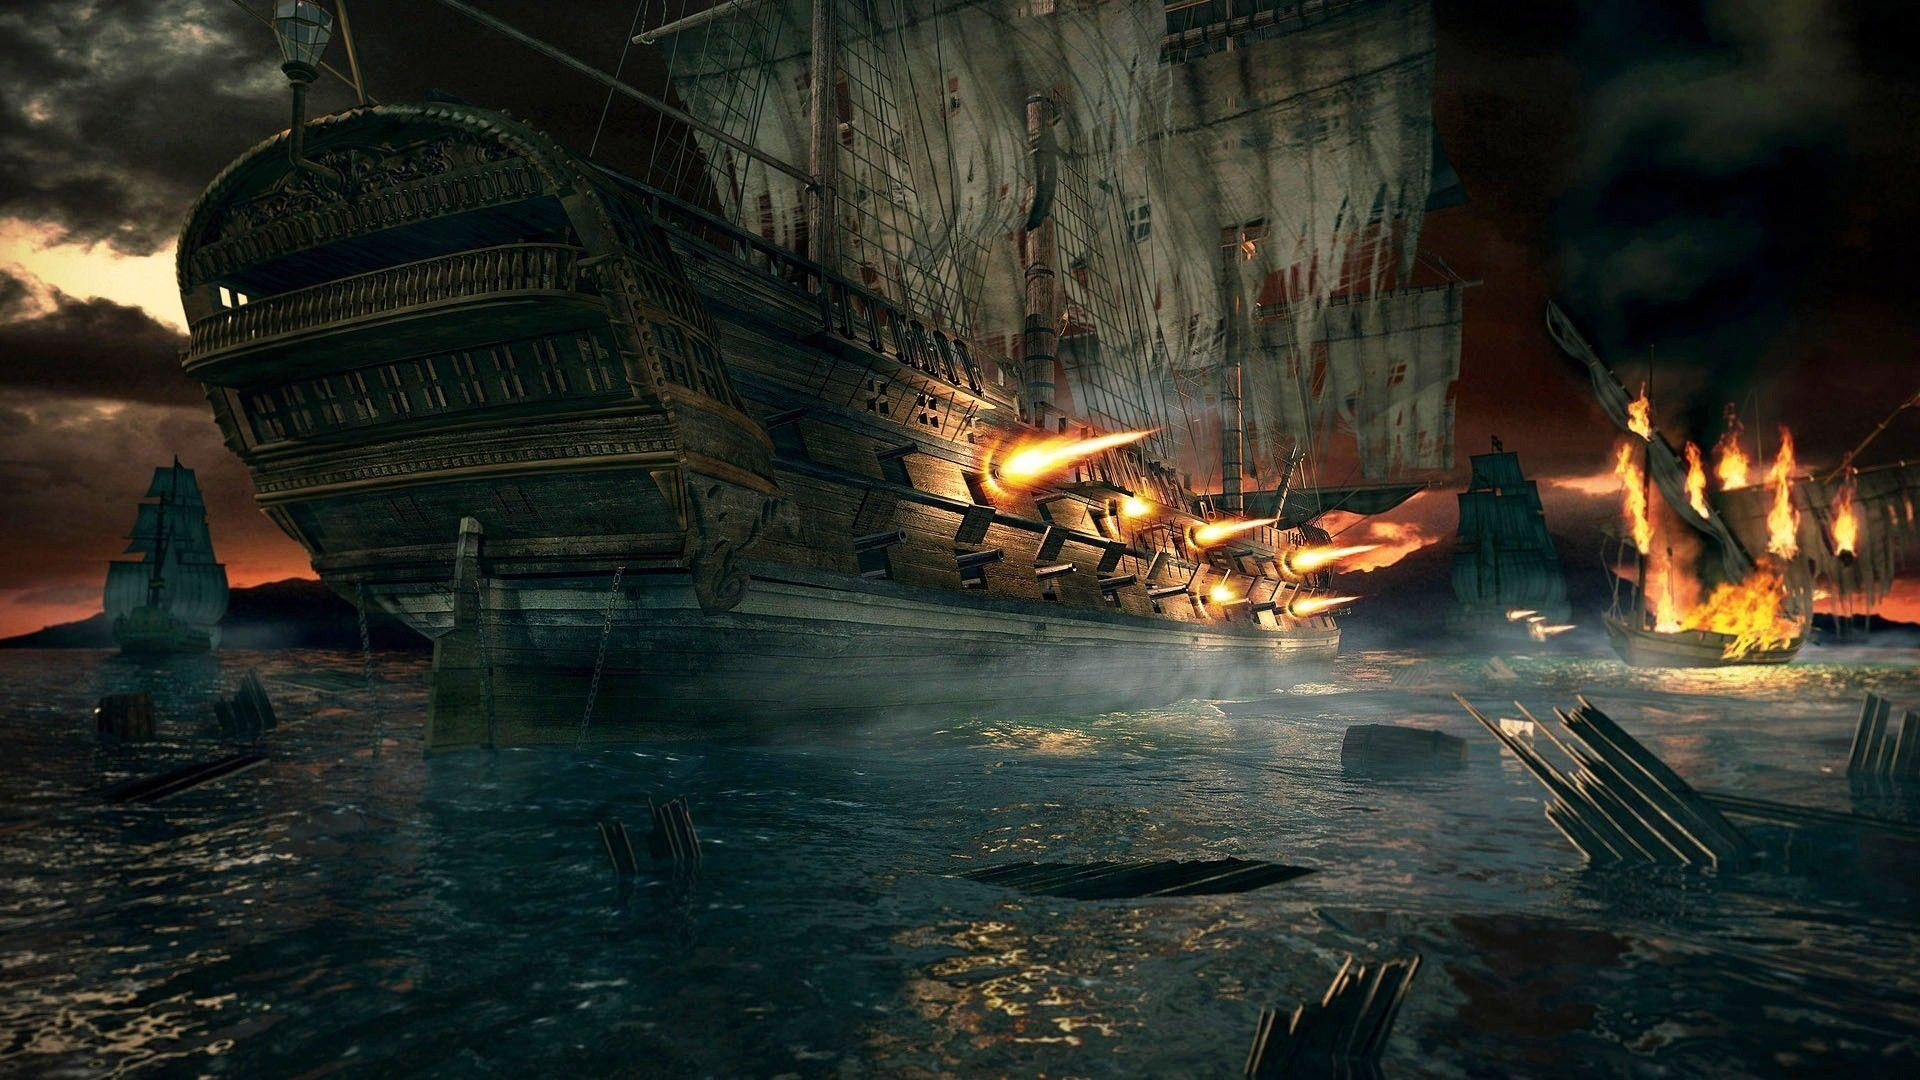 Pirate Ship Battle Wallpapers 1080p On Wallpaper 1080p Hd In 2020 Ghost Ship Art World Of Warcraft Gold Scenery Wallpaper